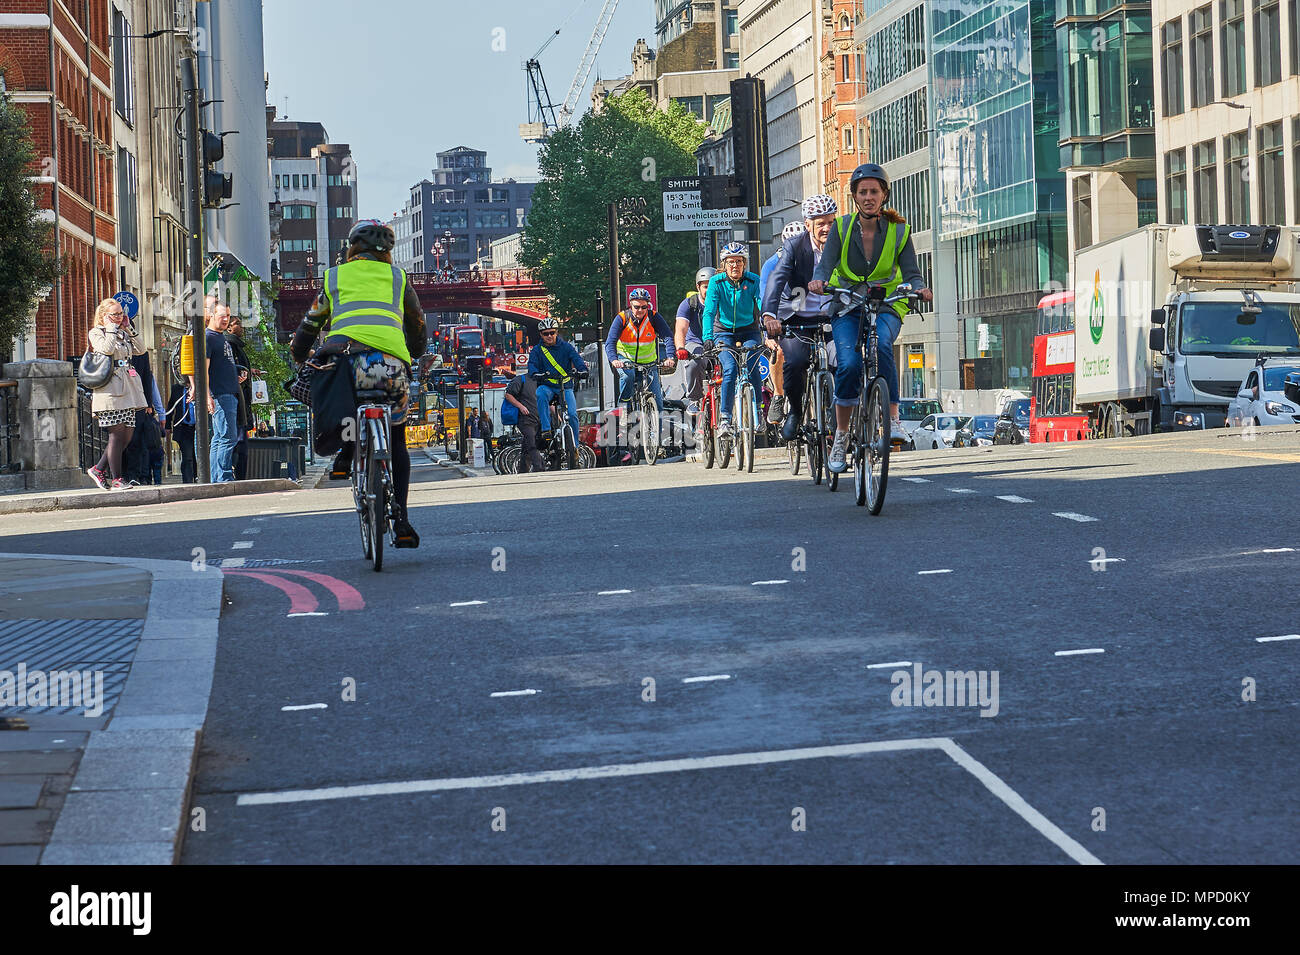 Cycling in London has increased since the introduction of better infrastructure and segregated bicycle lanes. - Stock Image